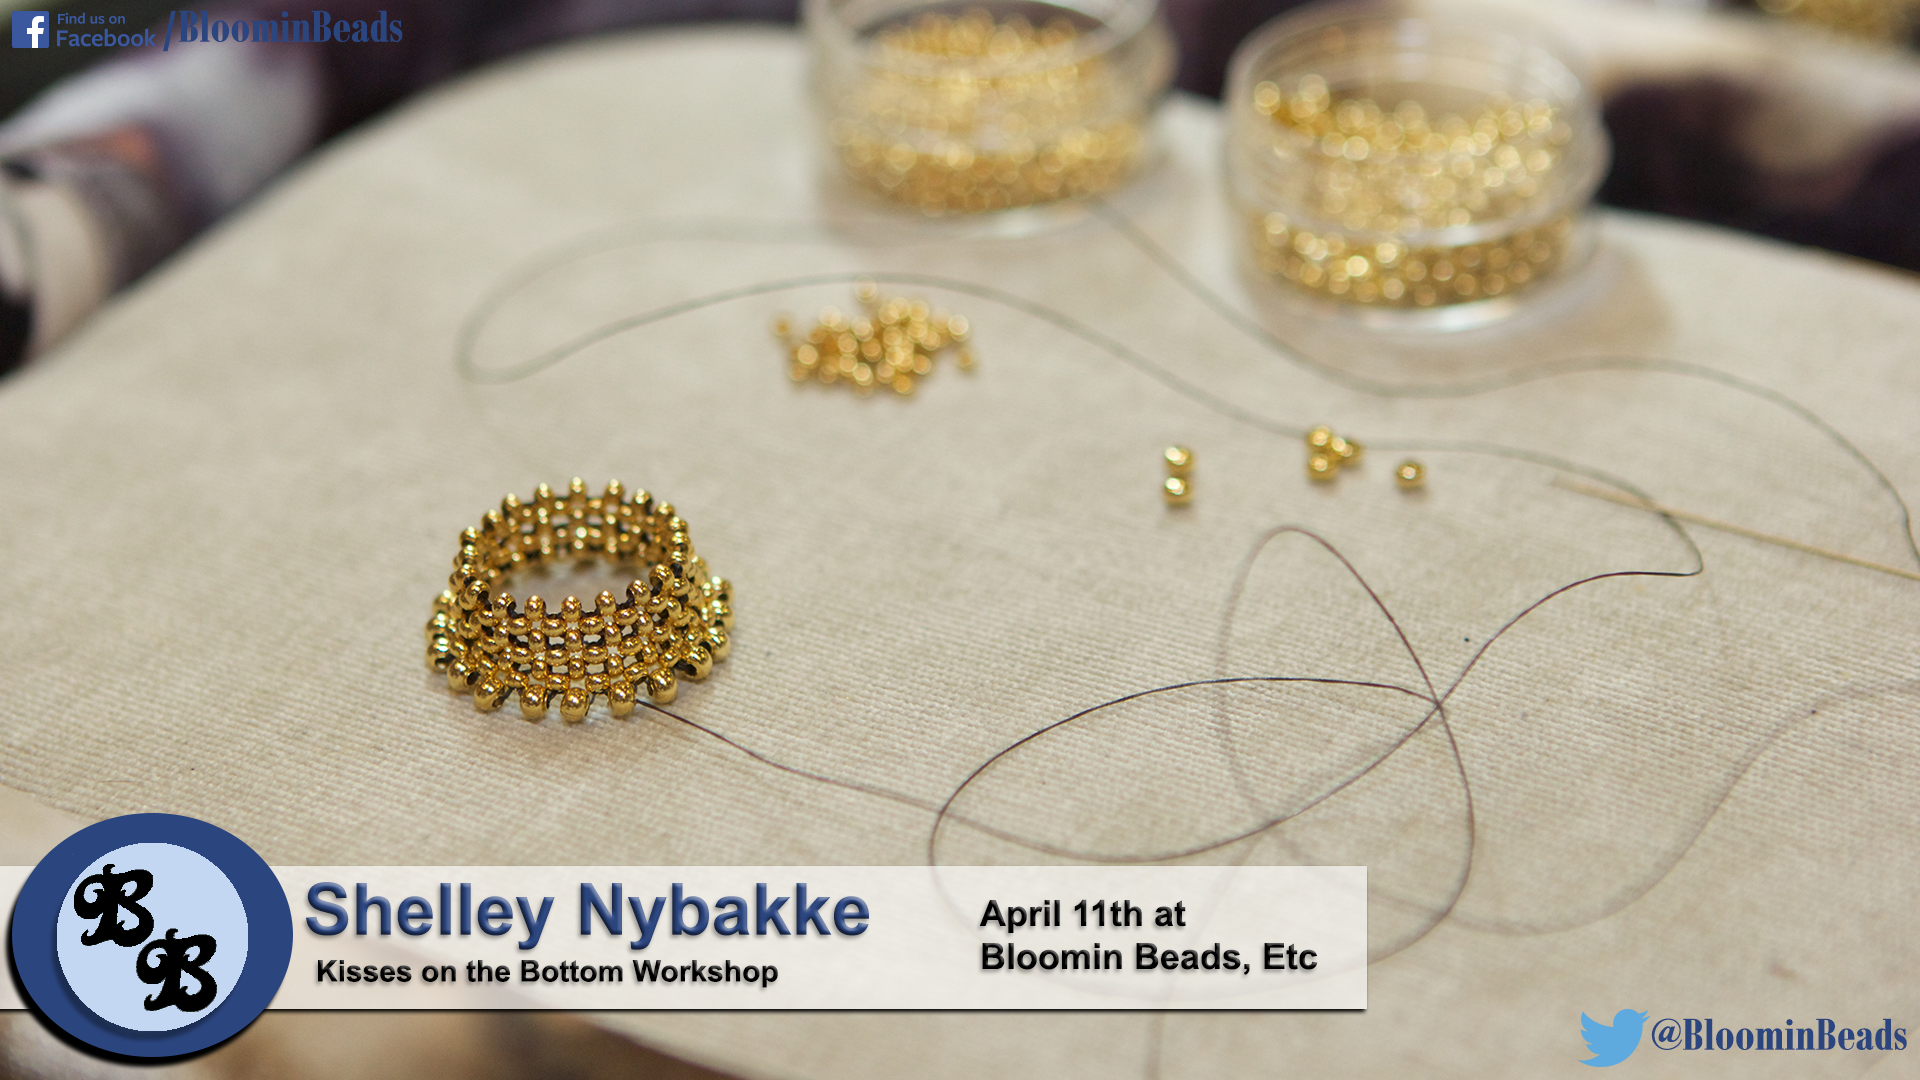 (4/11 @shelleynybakke Kisses on the Bottom Workshop)The BBE family and community show off what they are working on! #progress #community #beautiful